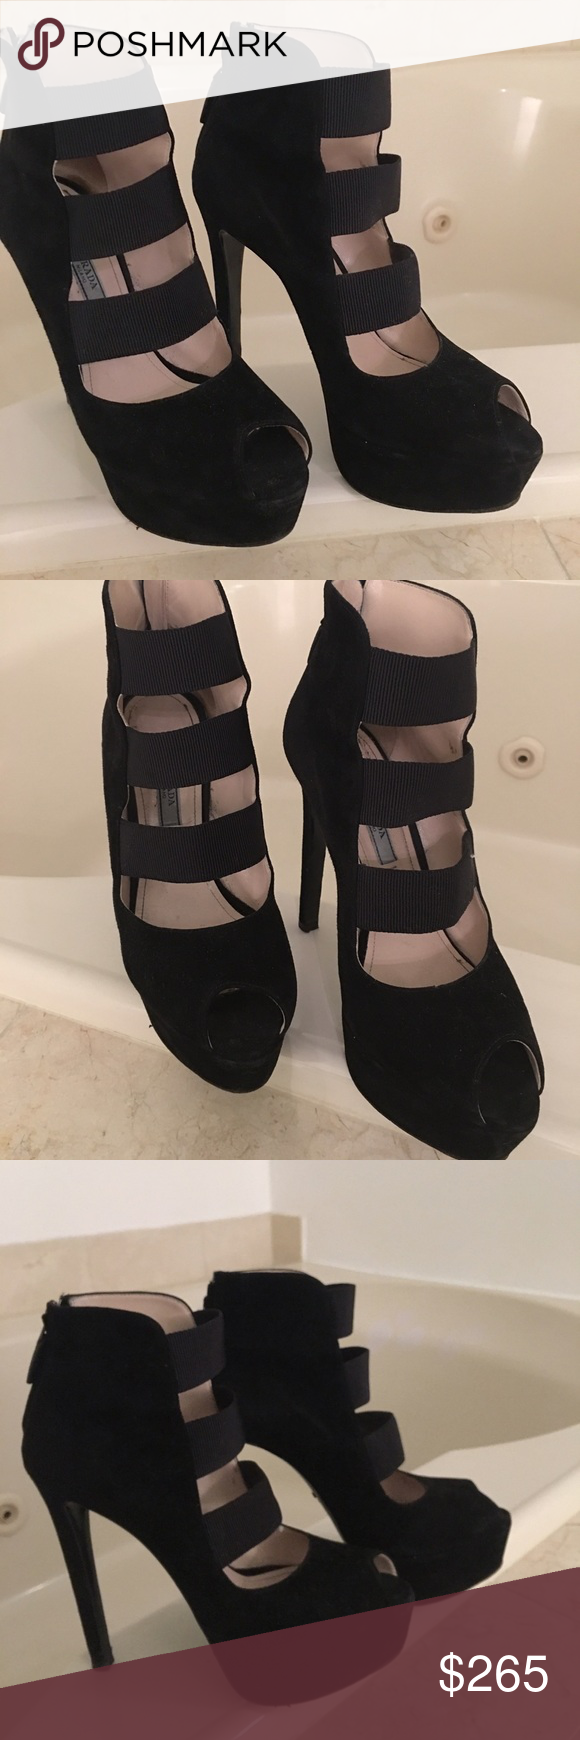 Prada pumps Good condition, don't miss The offer Prada Shoes Platforms